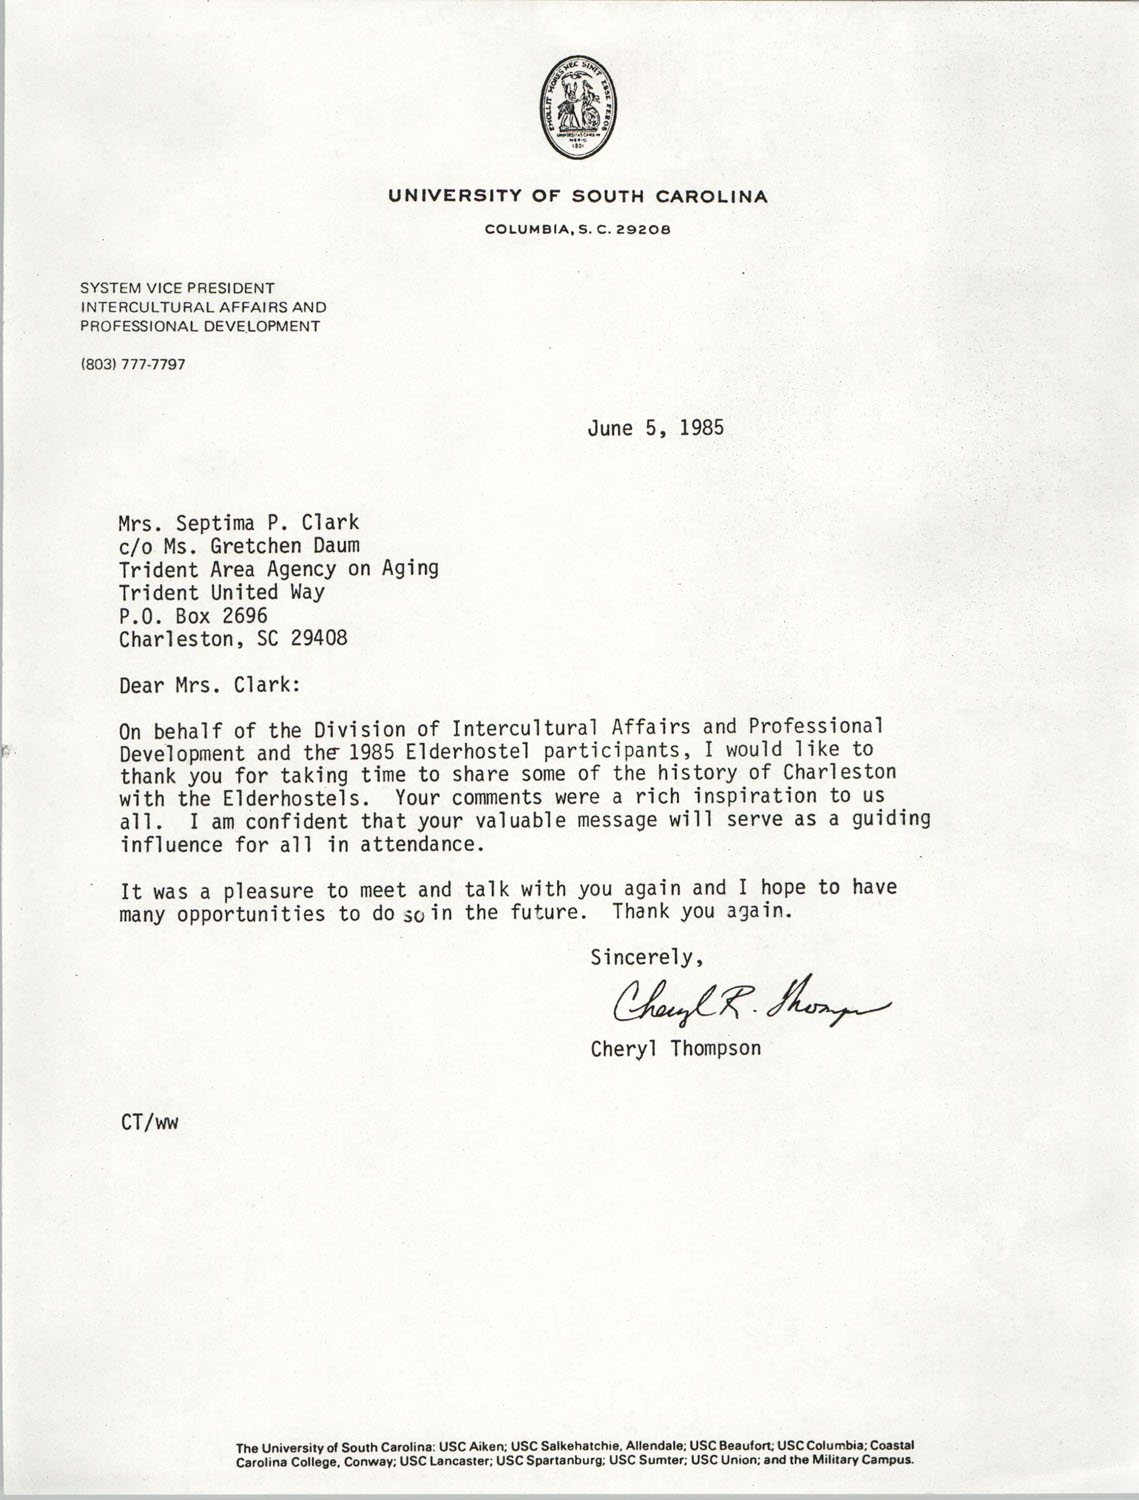 Letter from Cheryl Thompson to Septima P. Clark, June 5, 1985